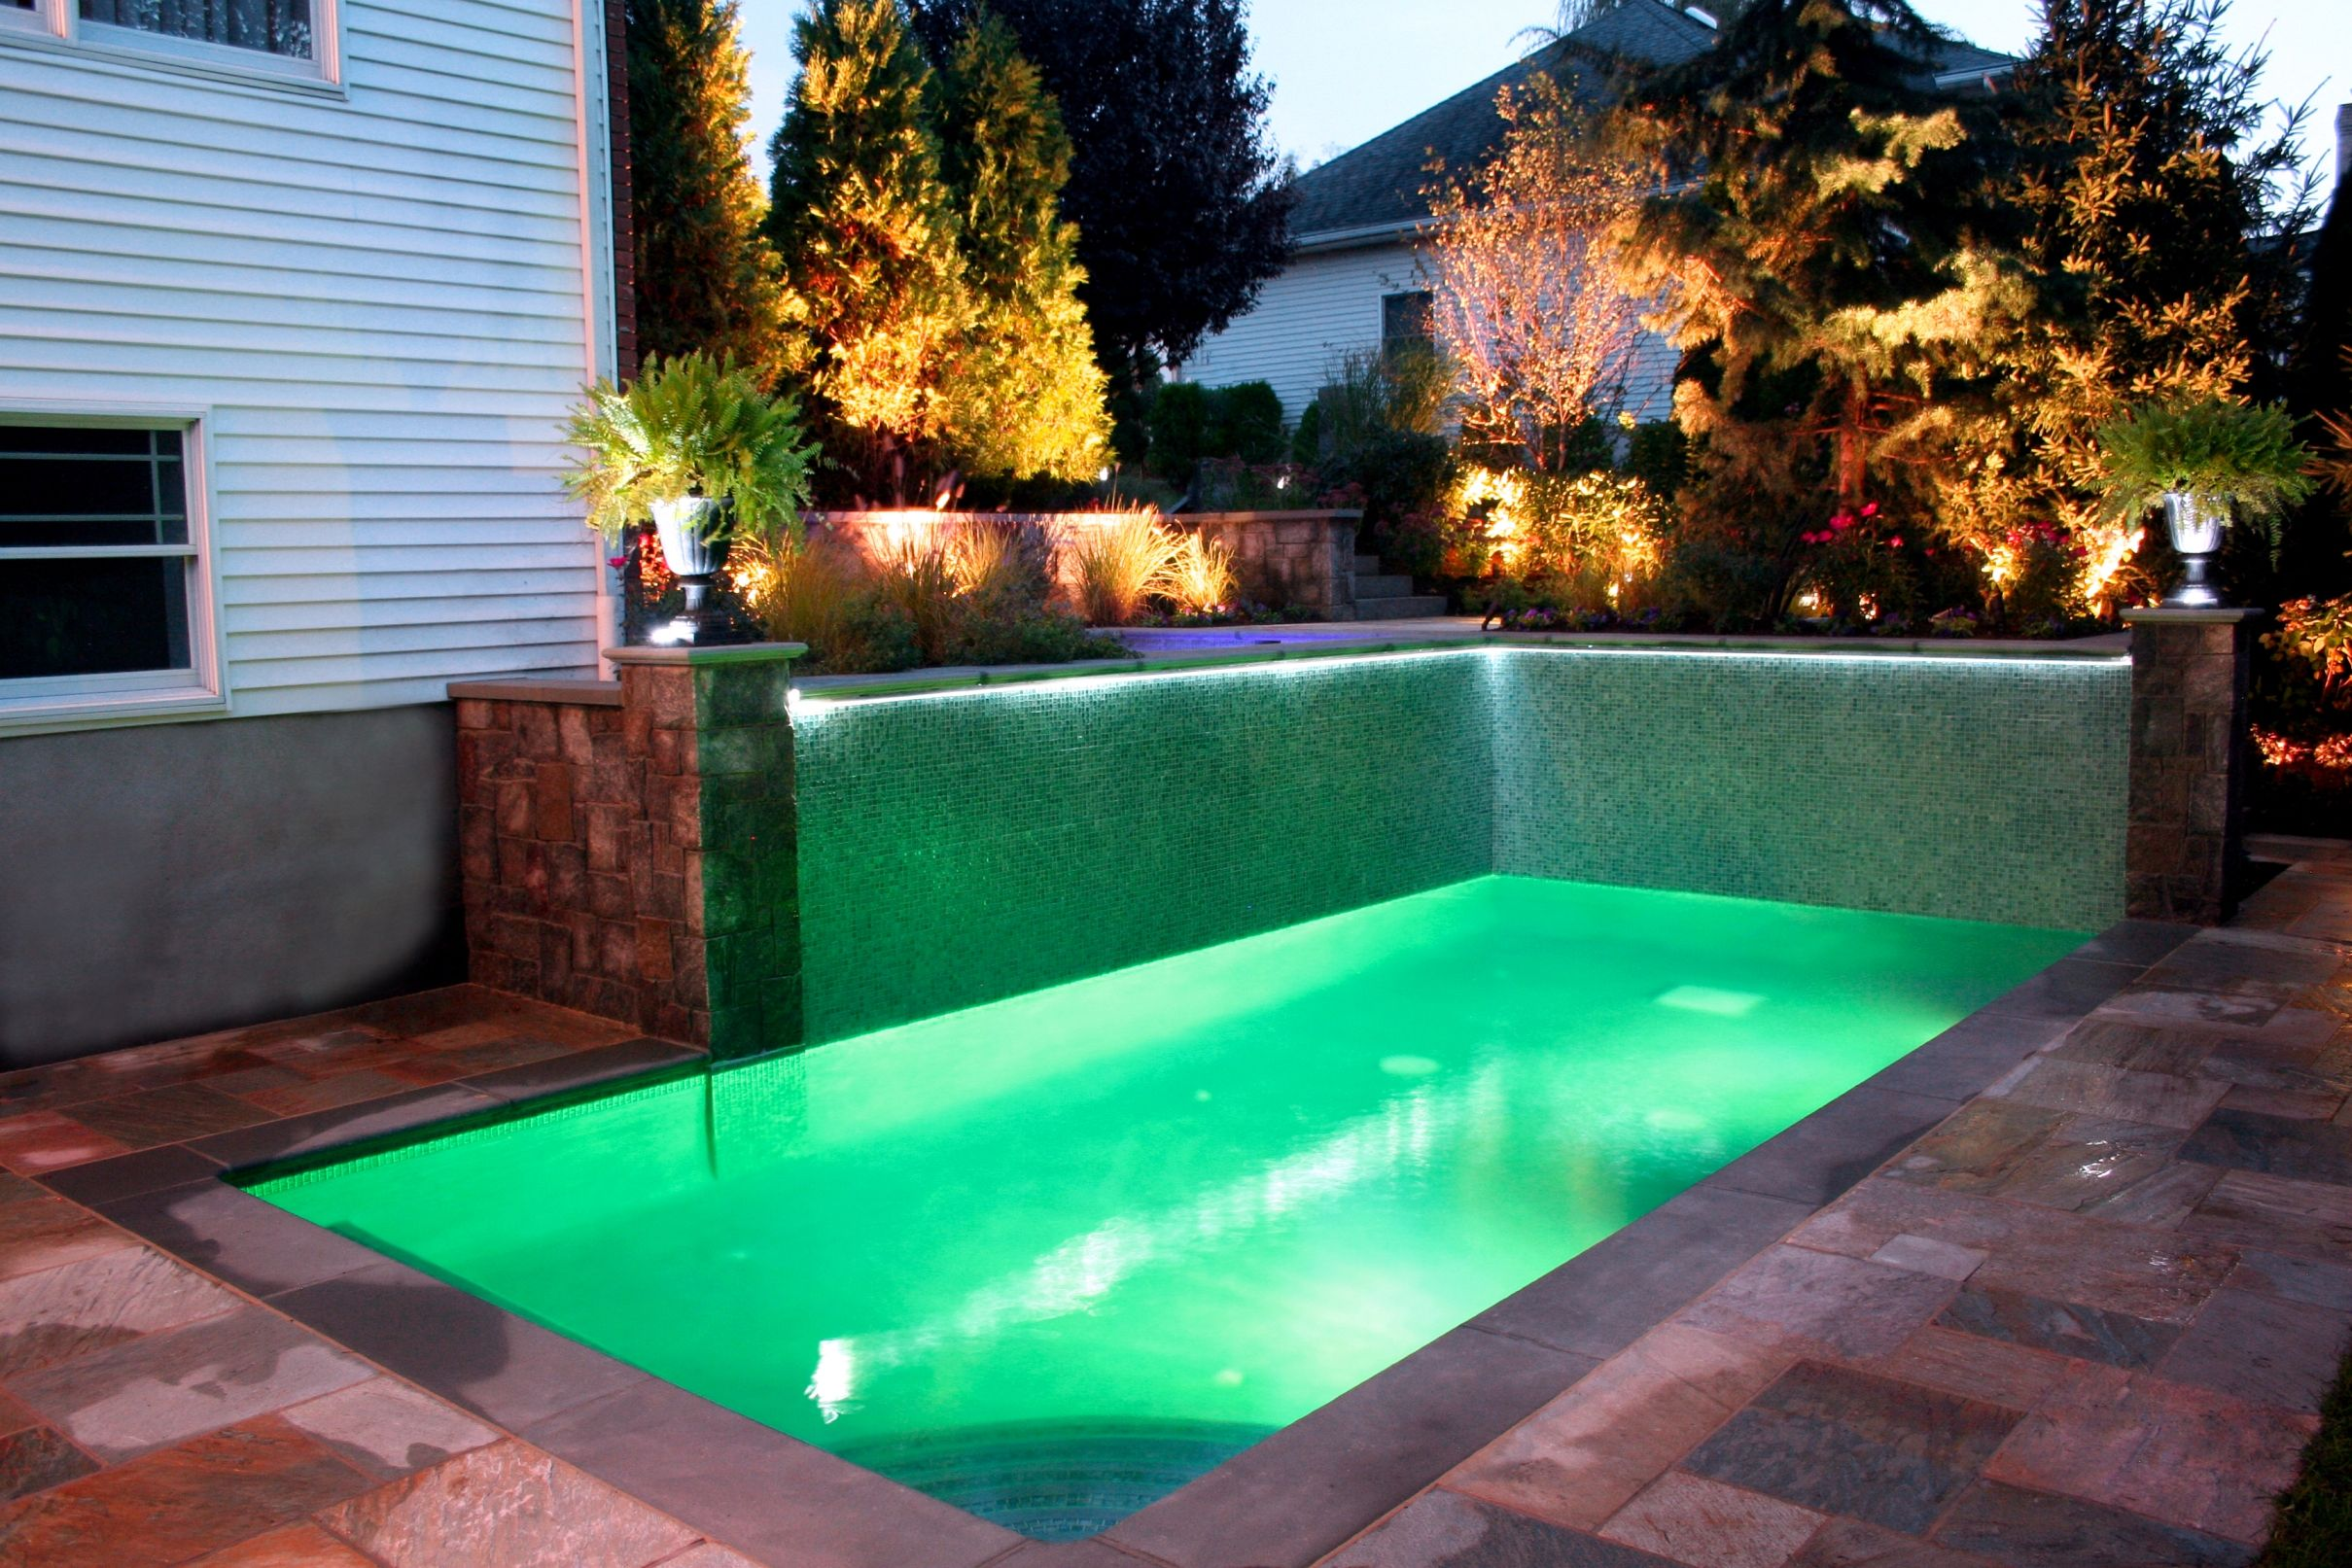 17 Tiny Pool For Small Yard Design Ideas